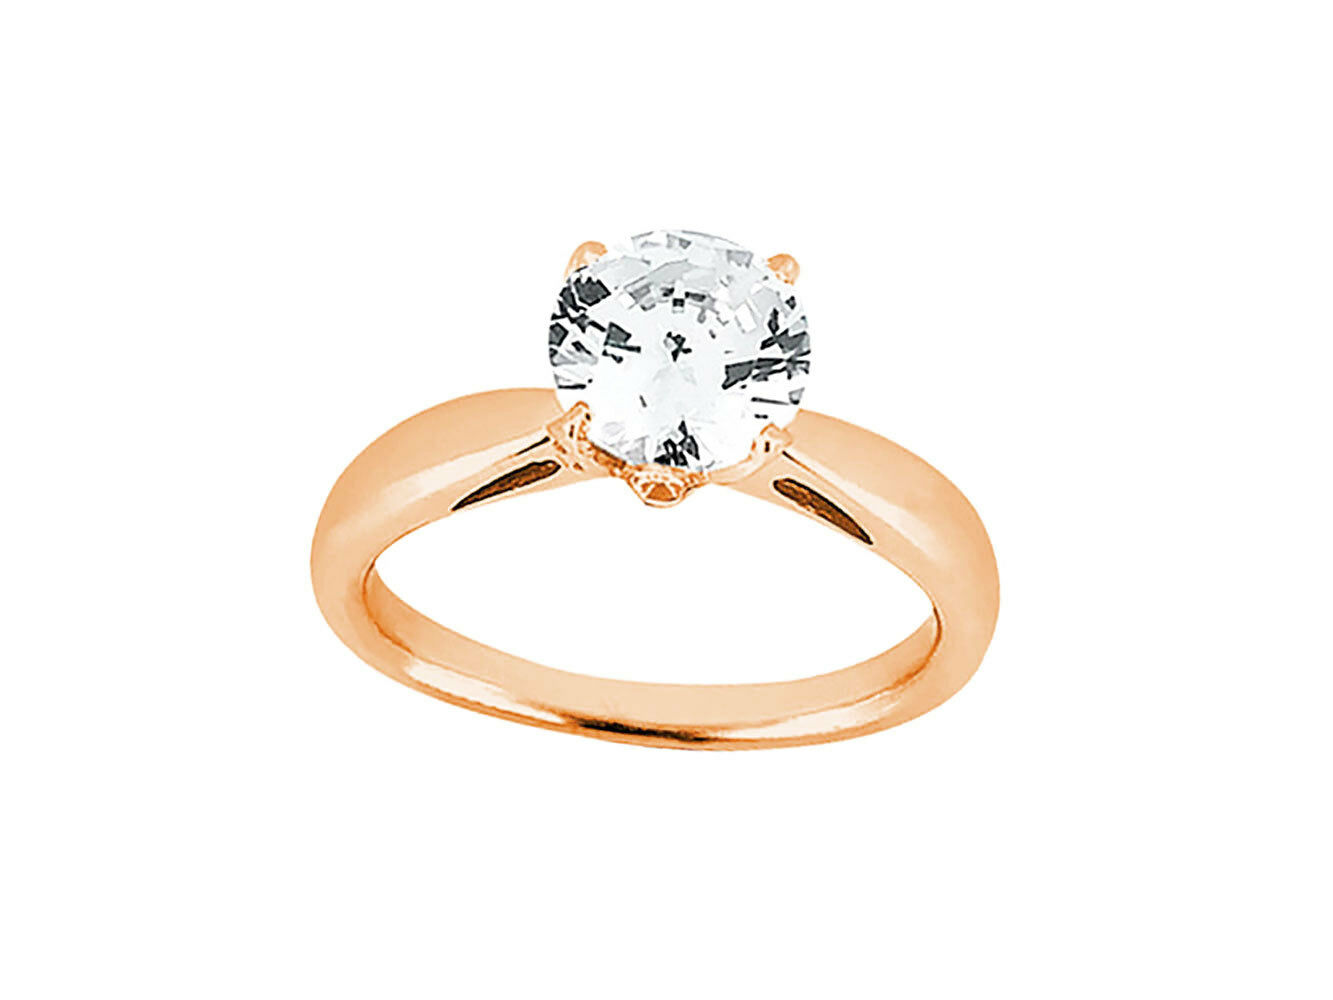 Genuine 0.75Ct Round Diamond Accented Solitaire Engagement Ring 10k gold